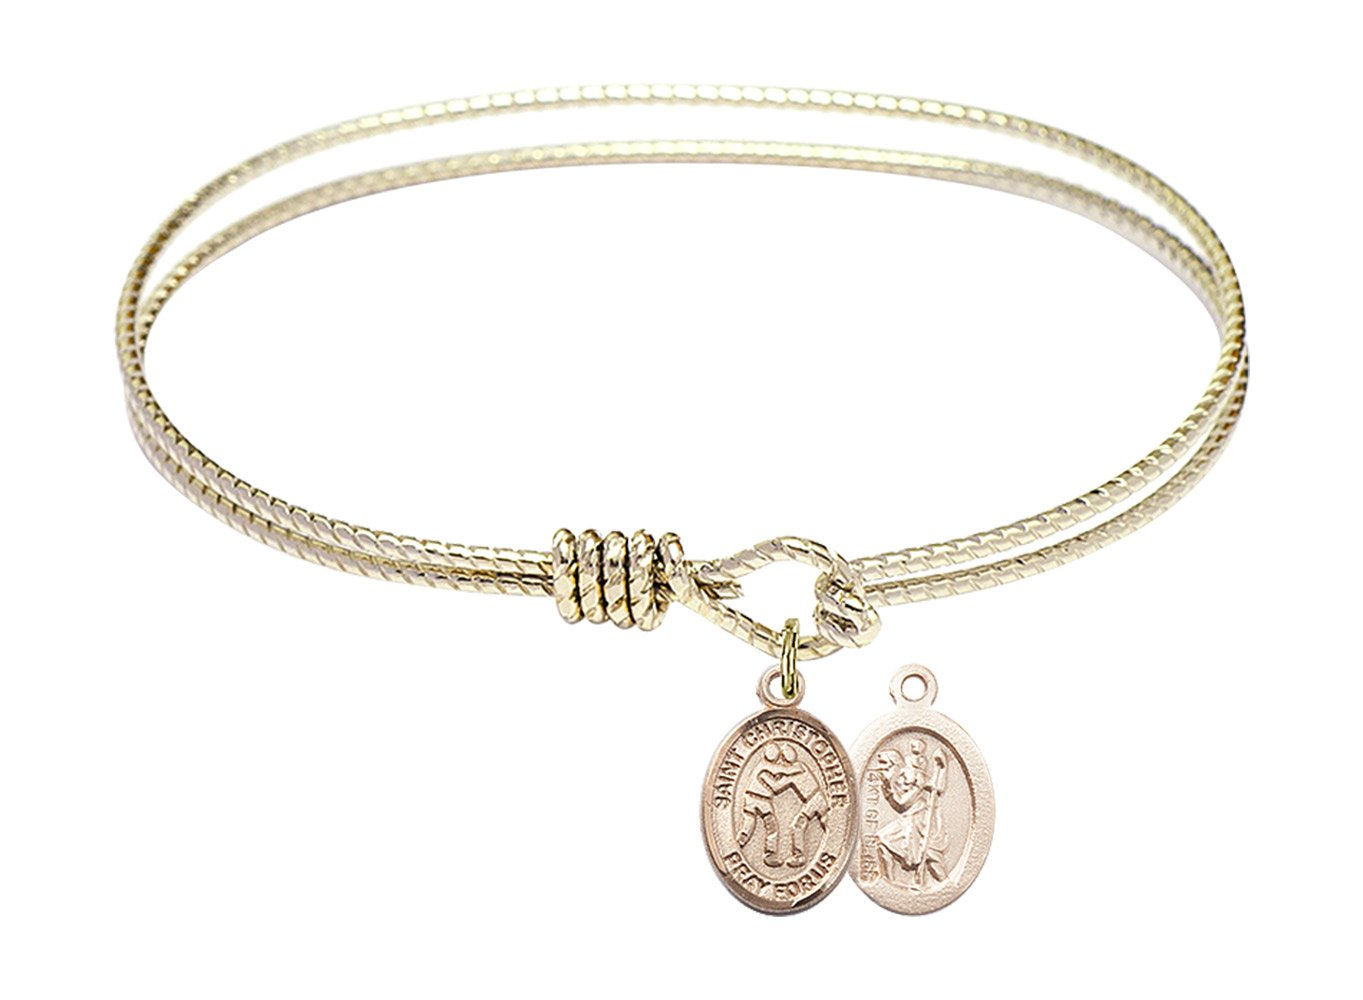 7 1/4 inch Oval Eye Hook Bangle Bracelet w/ St. Christopher/Wrestling in Gold-Filled by Bonyak Jewelry